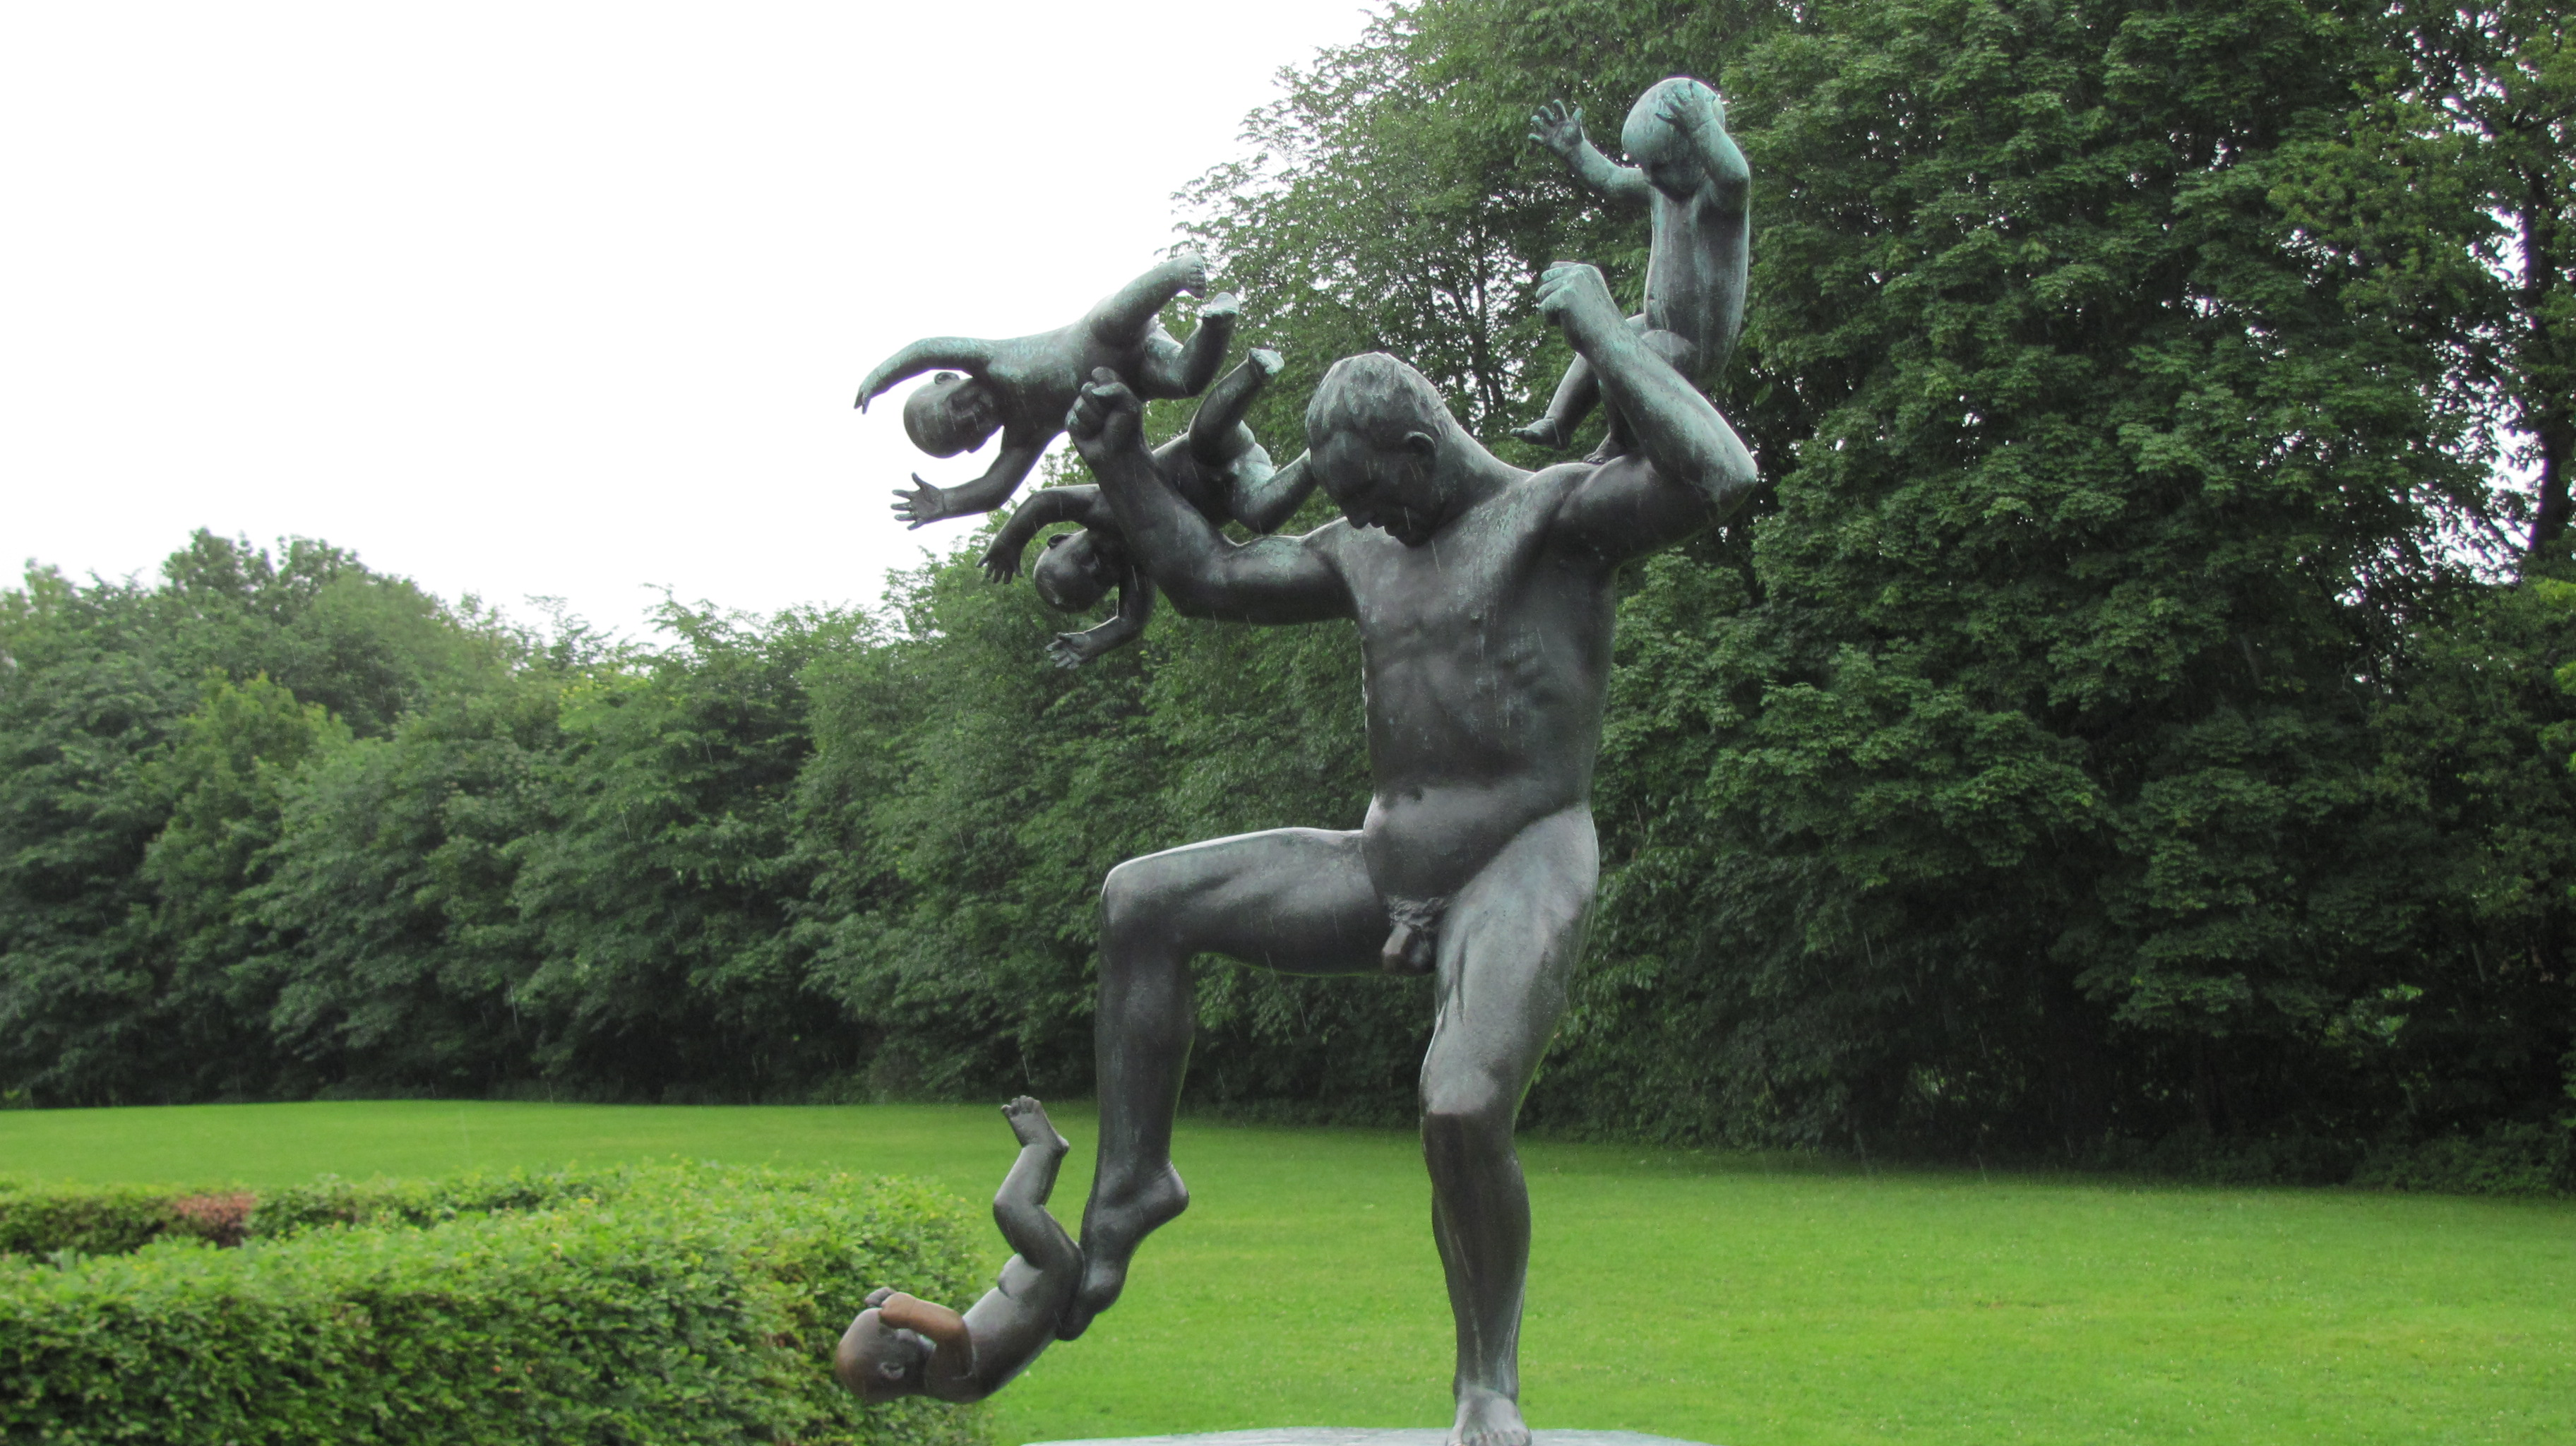 Man Juggling Babies